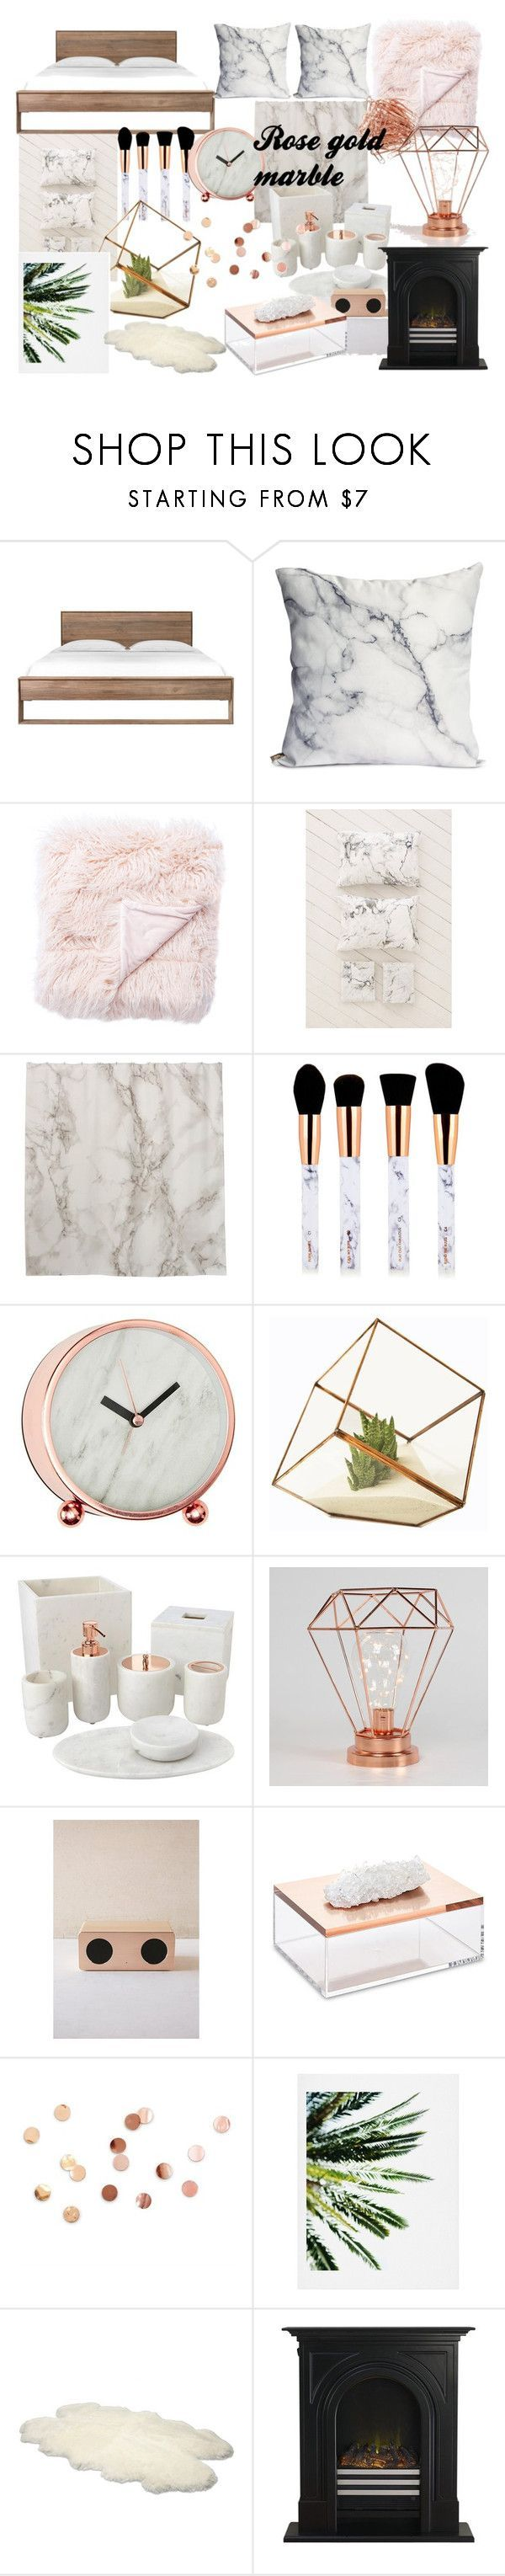 """rose gold marble room decor"" by alilaforce on Polyvore featuring interior, interiors, interior design, home, home decor, interior decorating, Jaipur, Urban Outfitters, Home Decorators Collection and Mapleton Drive"